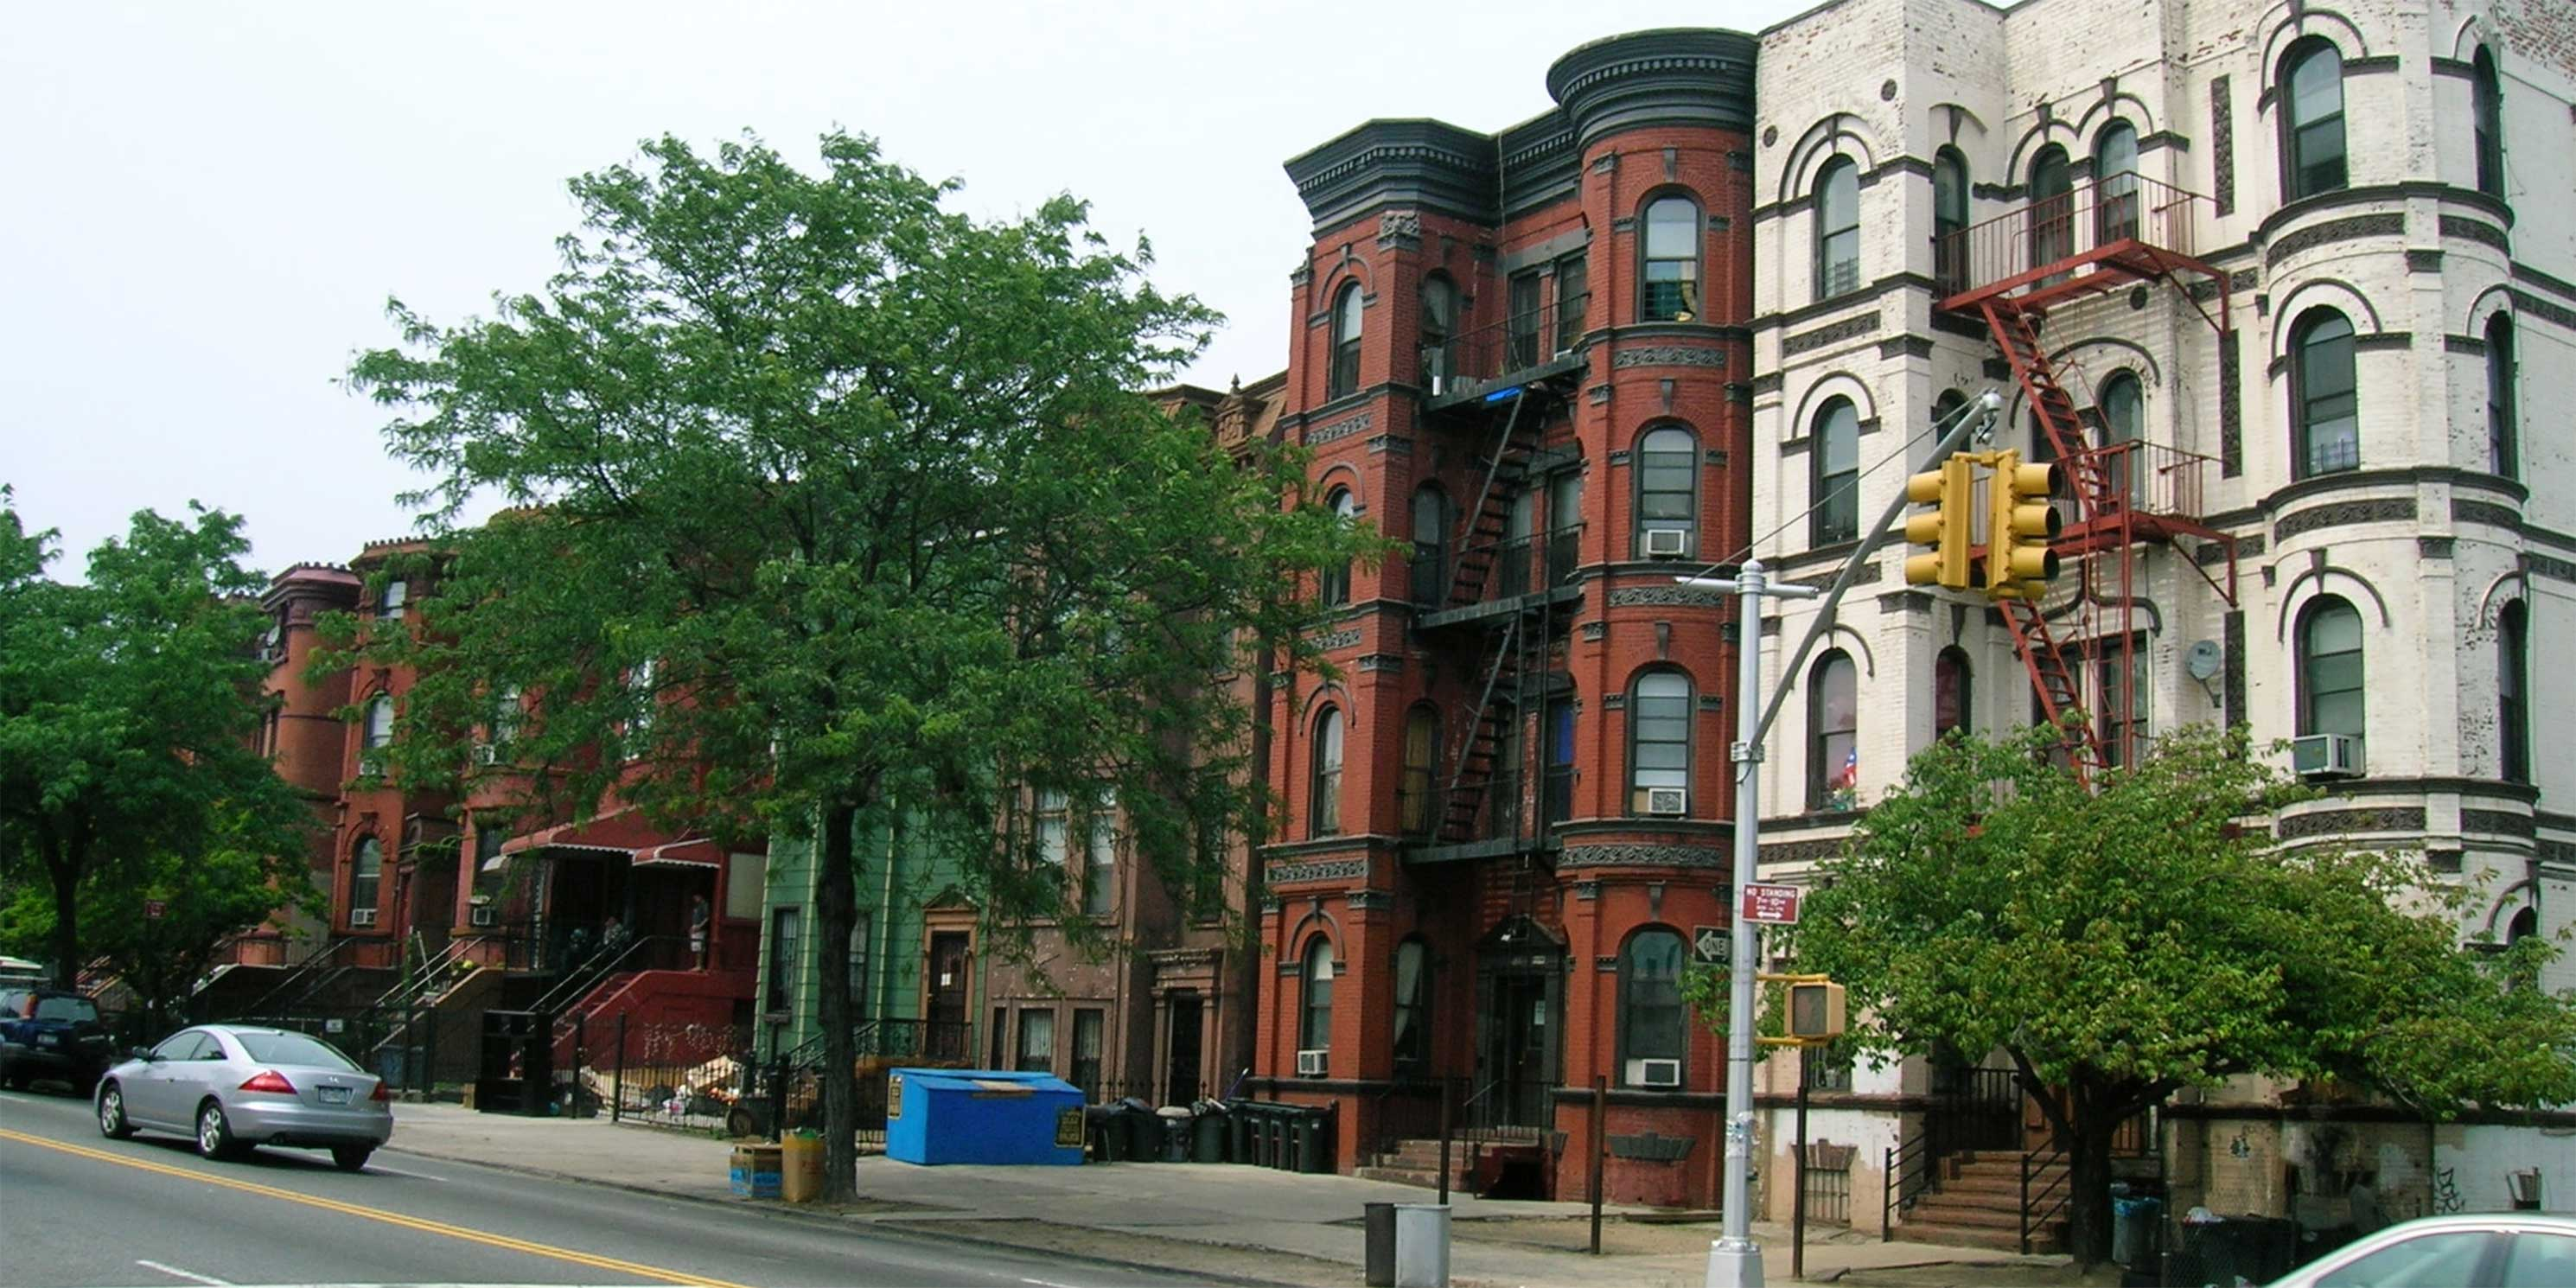 brownstone buildings on Bushwick Avenue